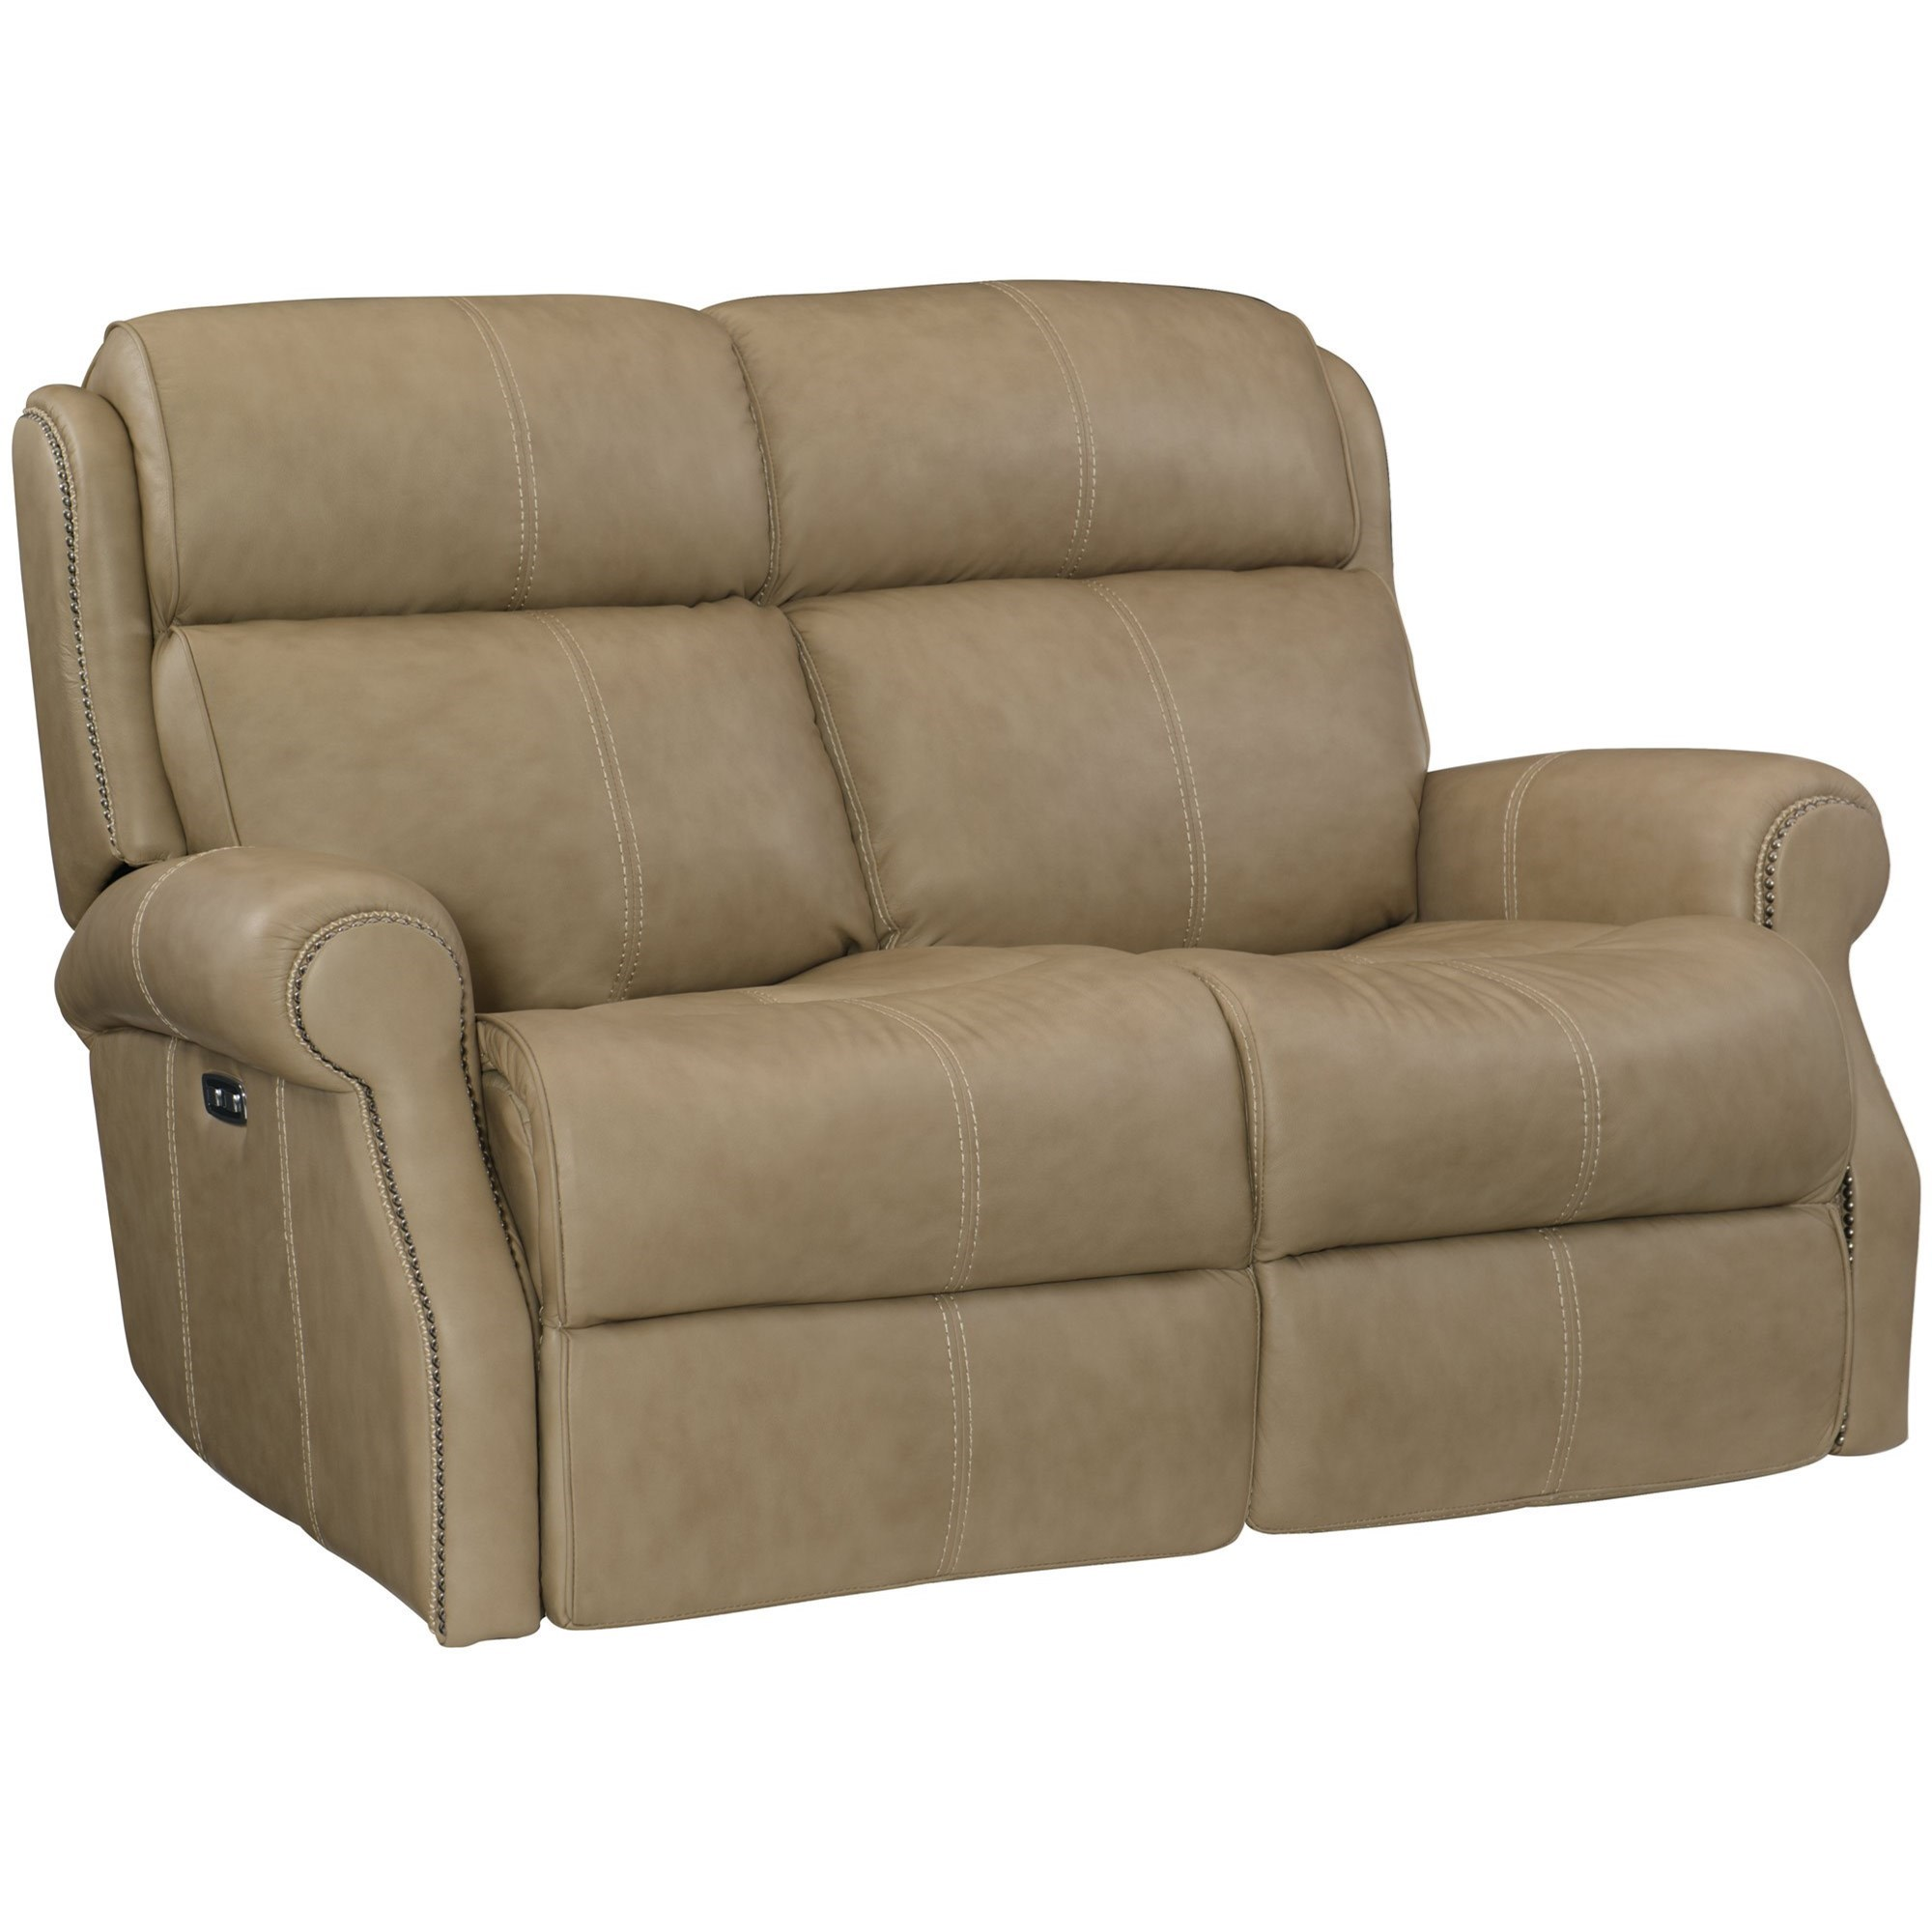 Bernhardt McGwire  Power Motion Loveseat - Item Number: 295RL-305-020